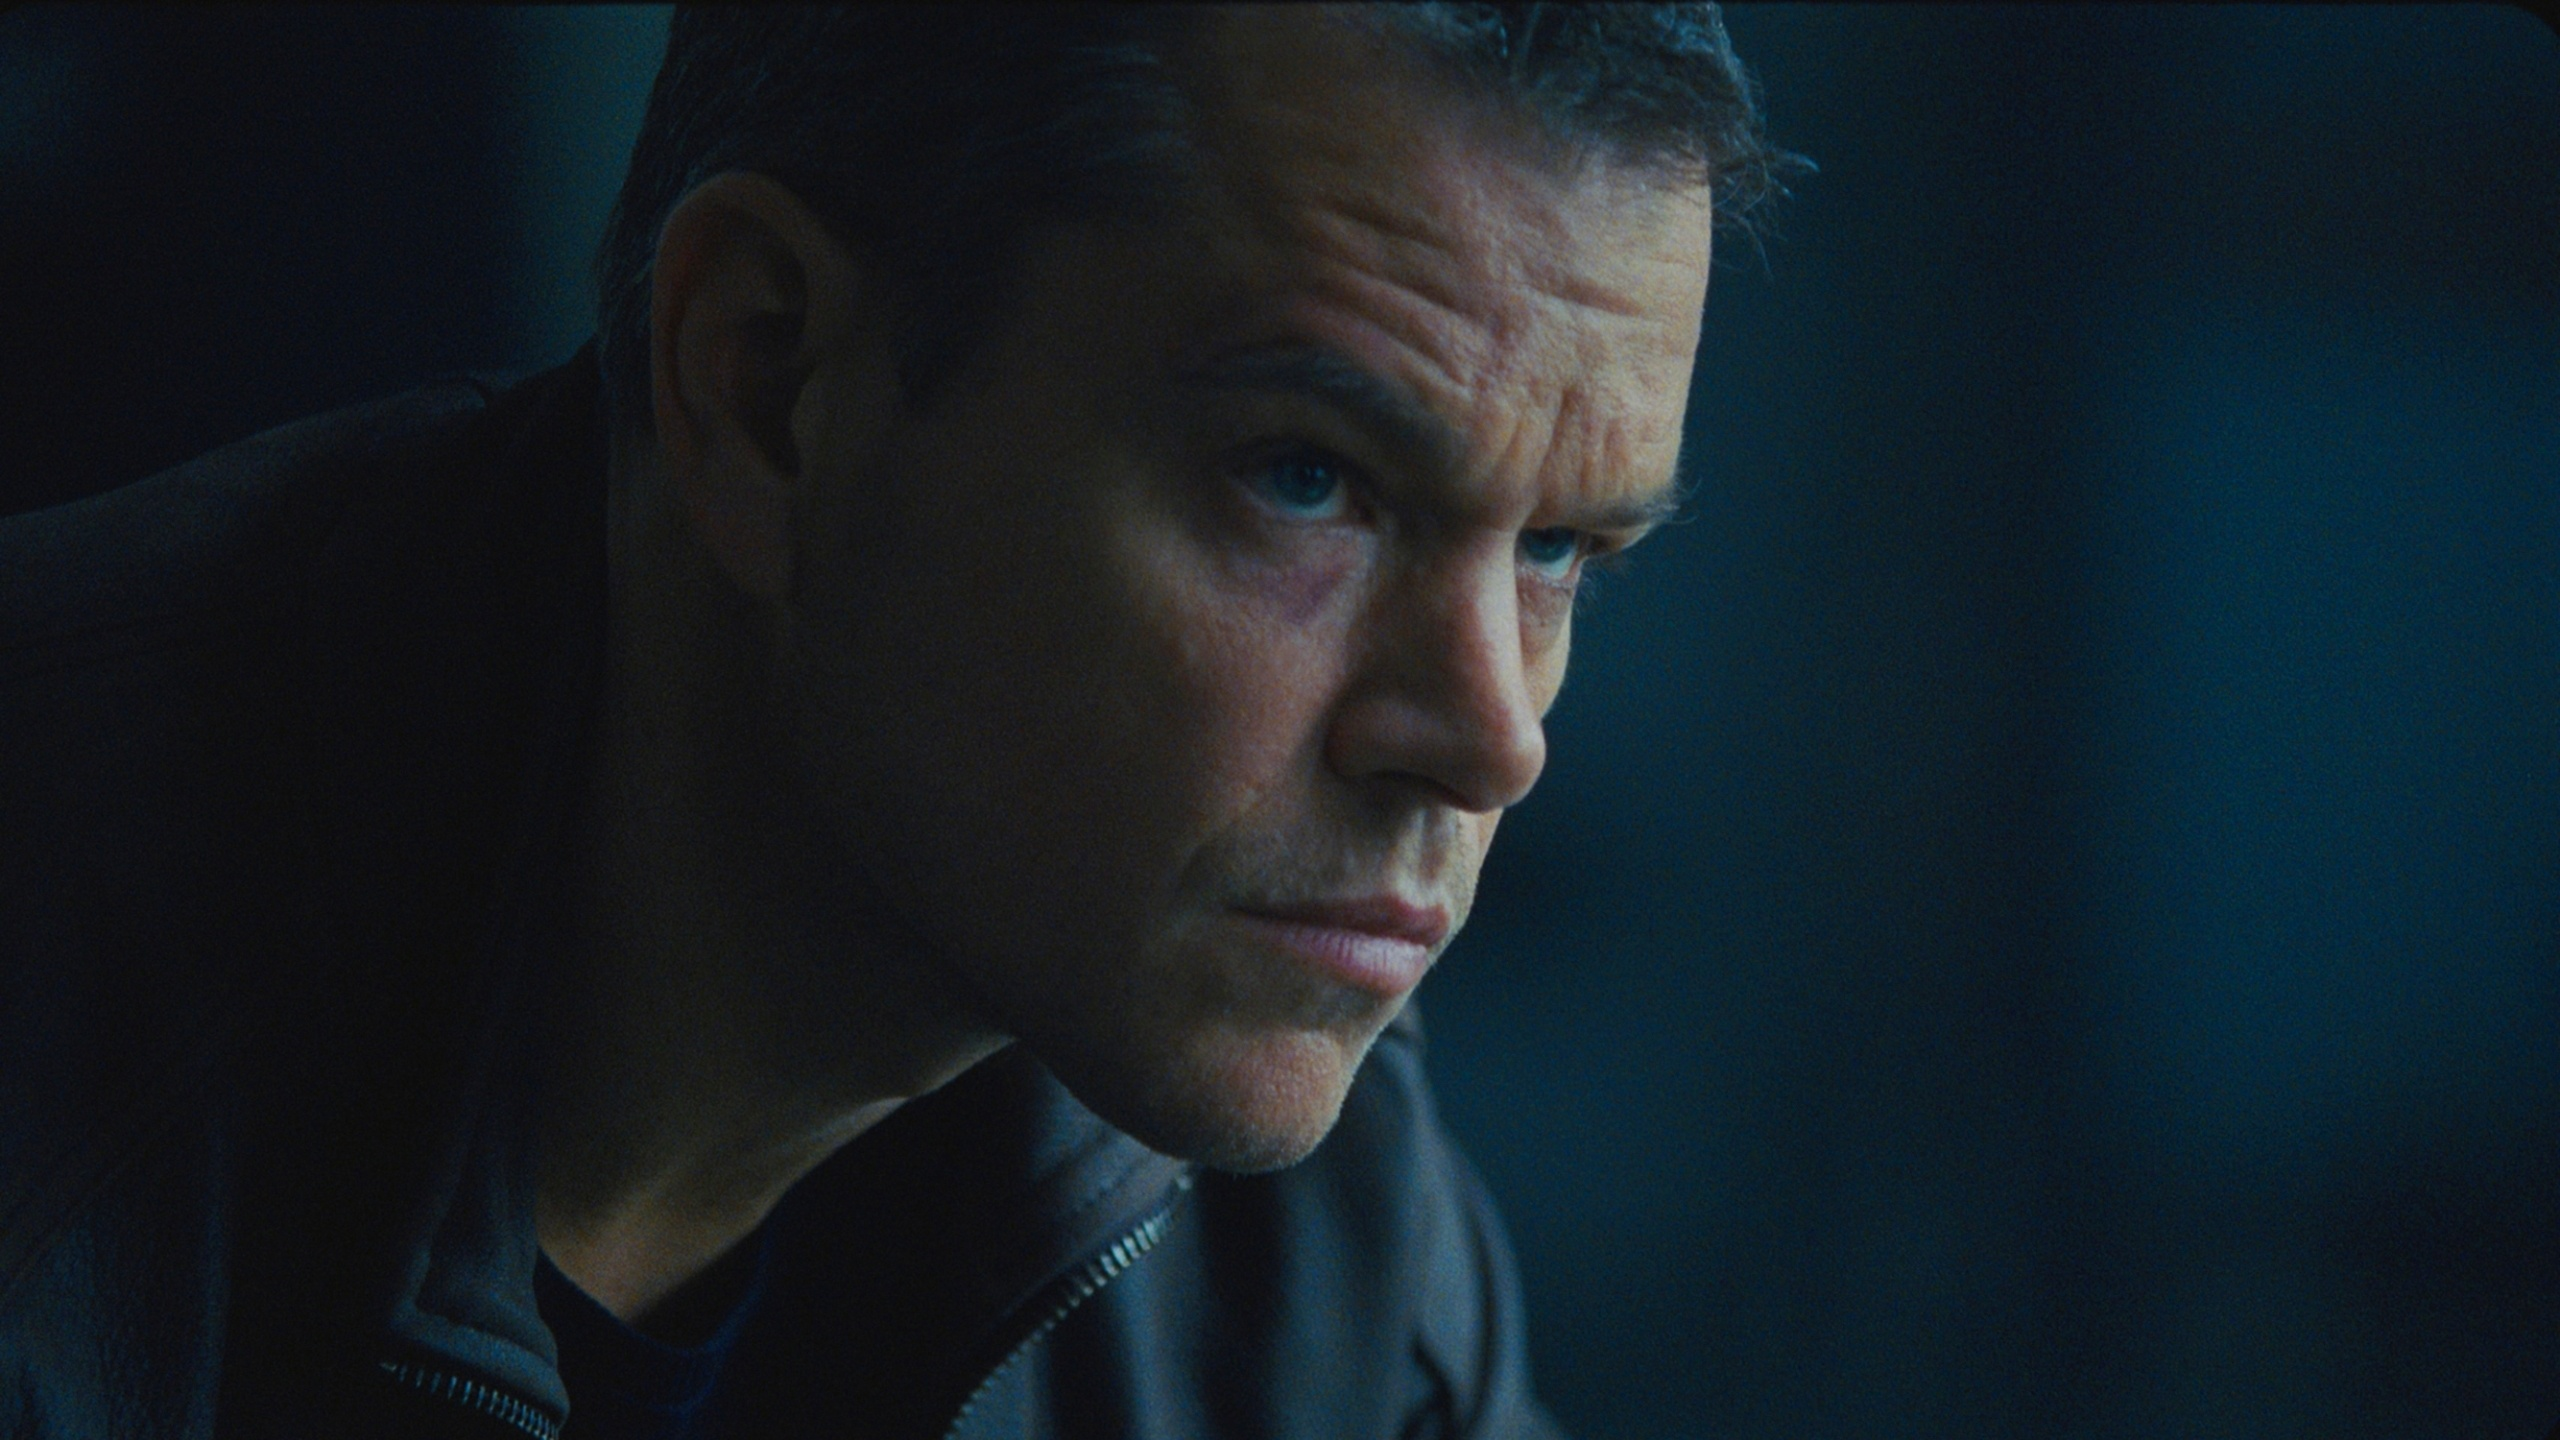 China's 3D screenings of Jason Bourne are making people violently ill